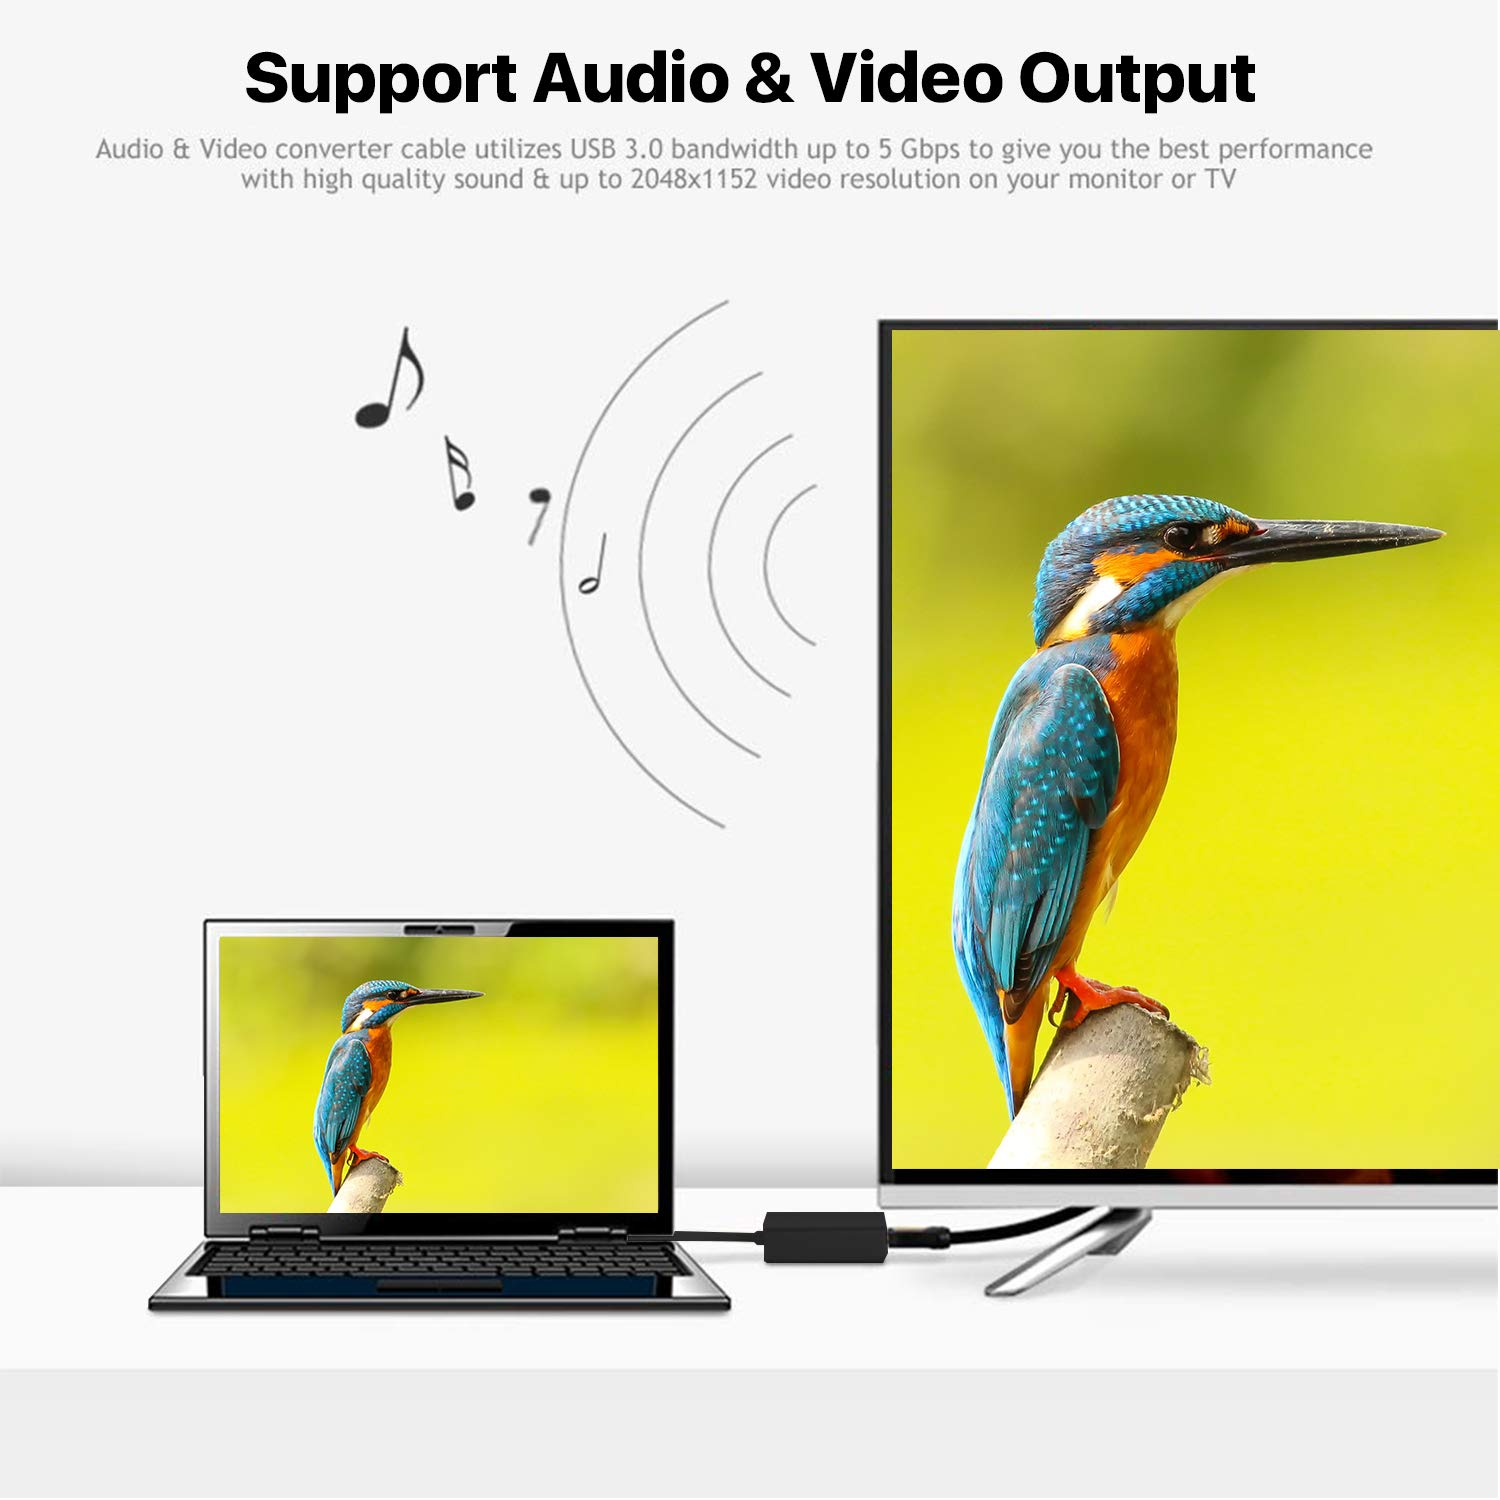 USB 3.0 to HDMI 1080P Video Graphics Cable Converter with Audio Output for Multiple Monitors NO MAC /& Vista USB to HDMI Adapter Compatible with Windows XP//7//8//8.1//10